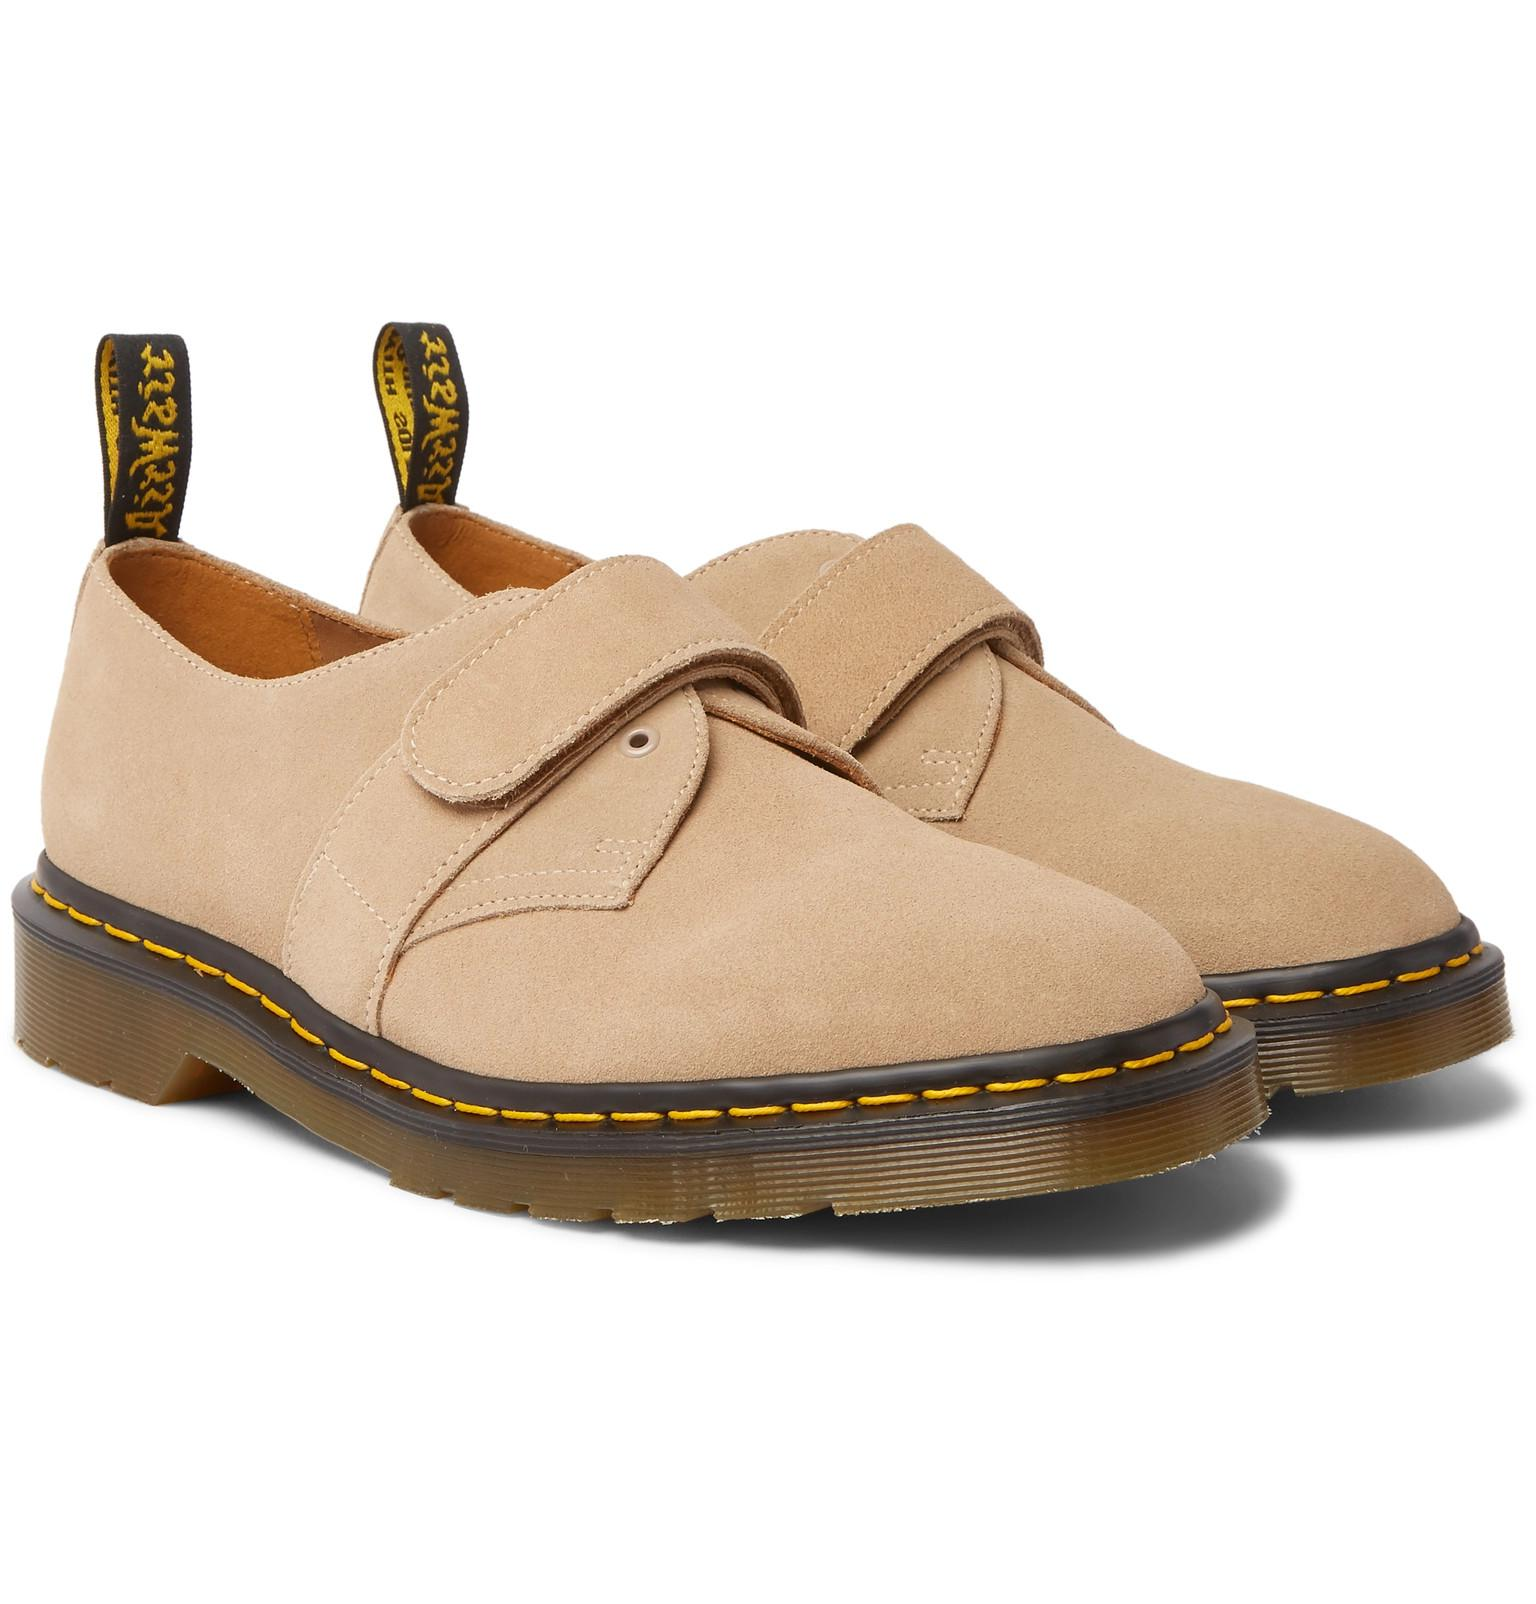 + Dr Martens Leather Derby Shoes Engineered Garments JY5Ticb